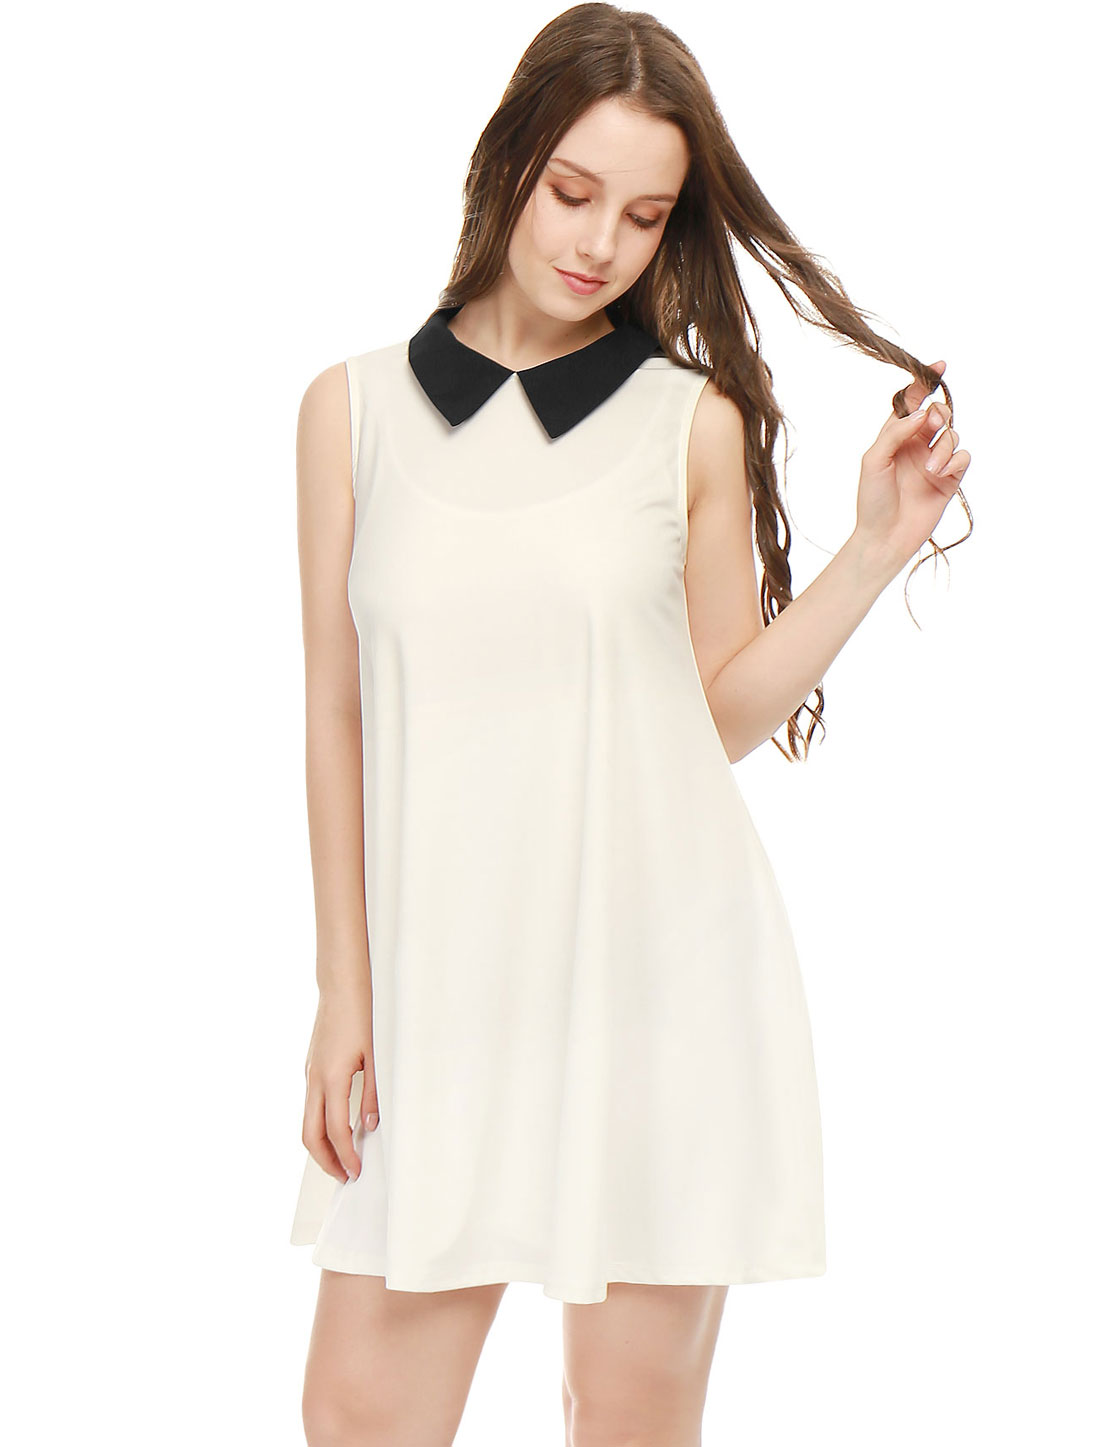 Women Contrast Color Peter Pan Collar Sleeveless Swing Dress White XS